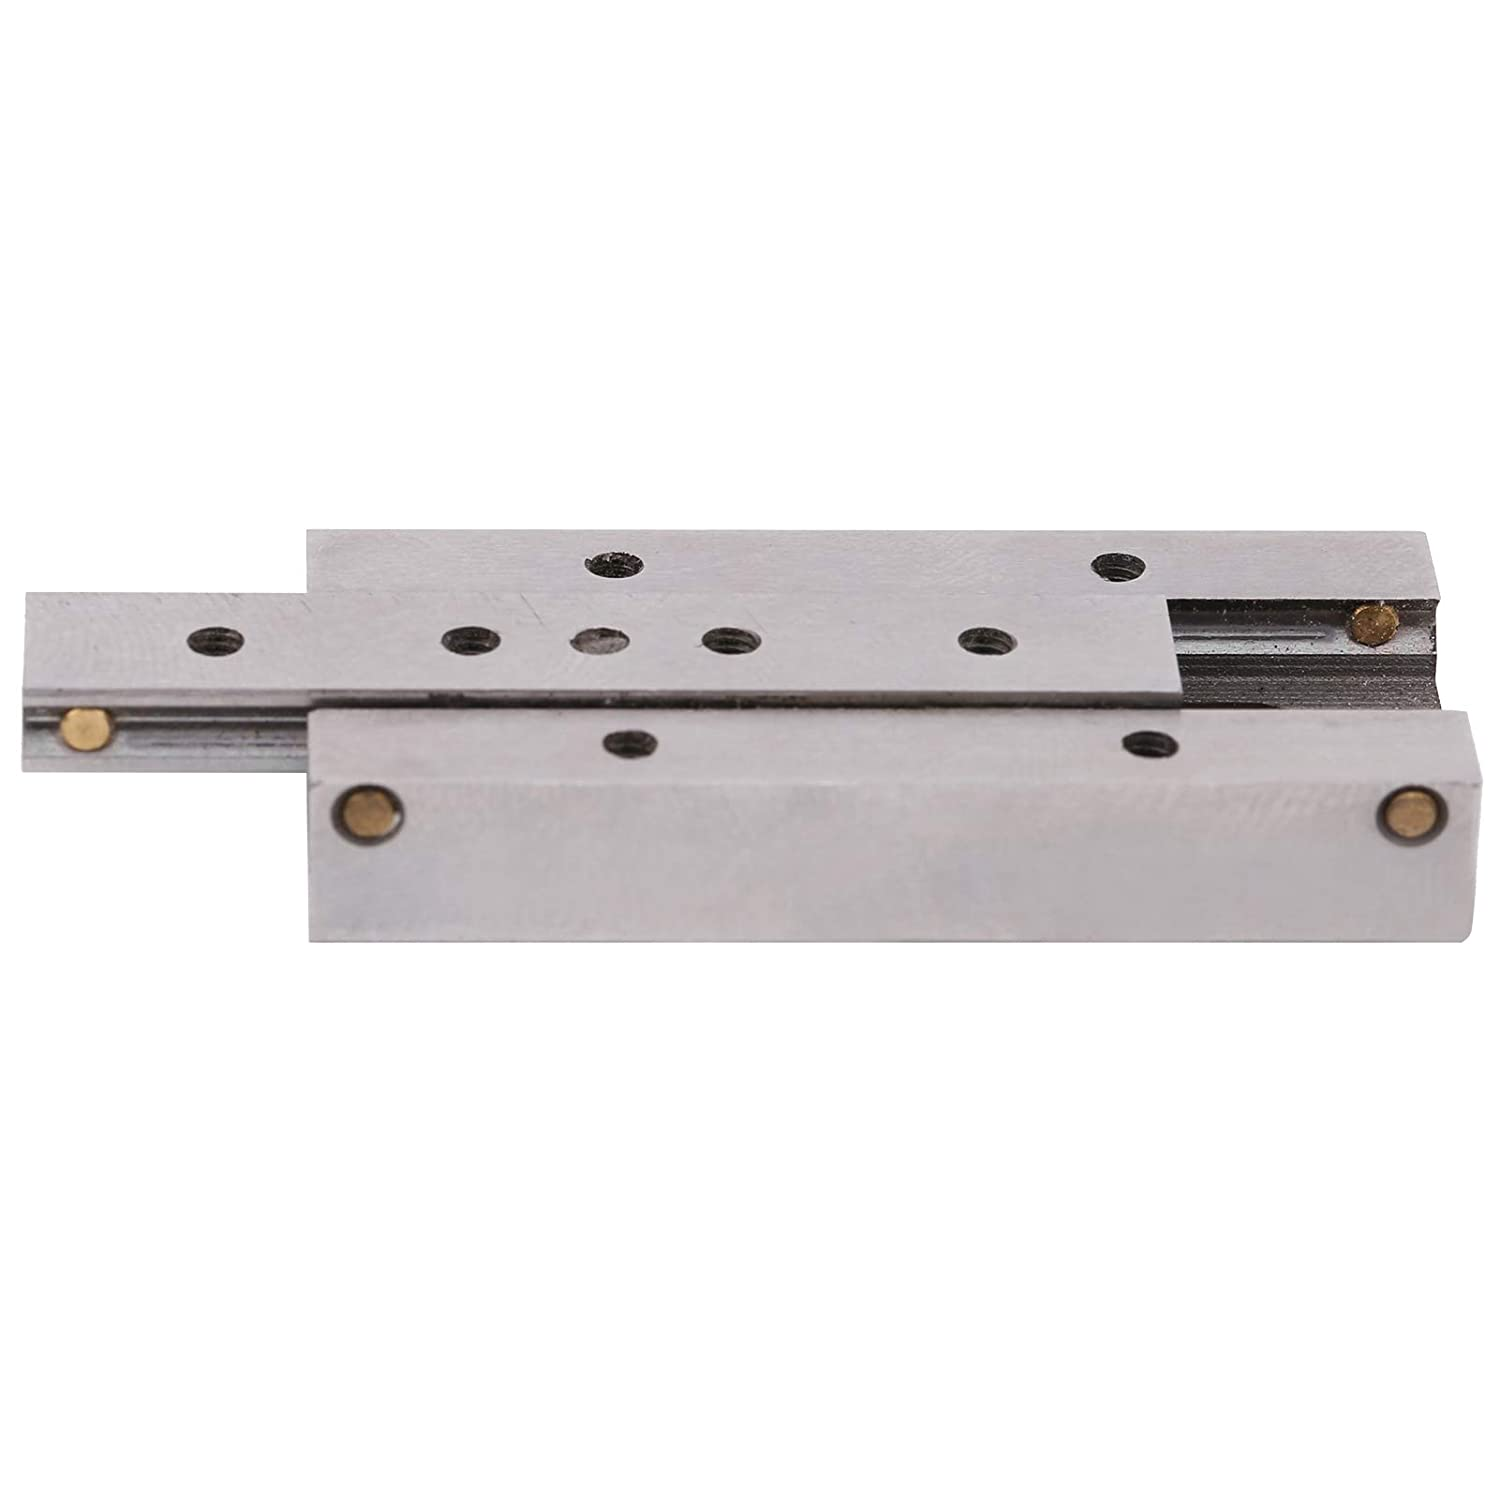 Soldering Stainless Steel Linear Sliding Table X‑Axis Sales